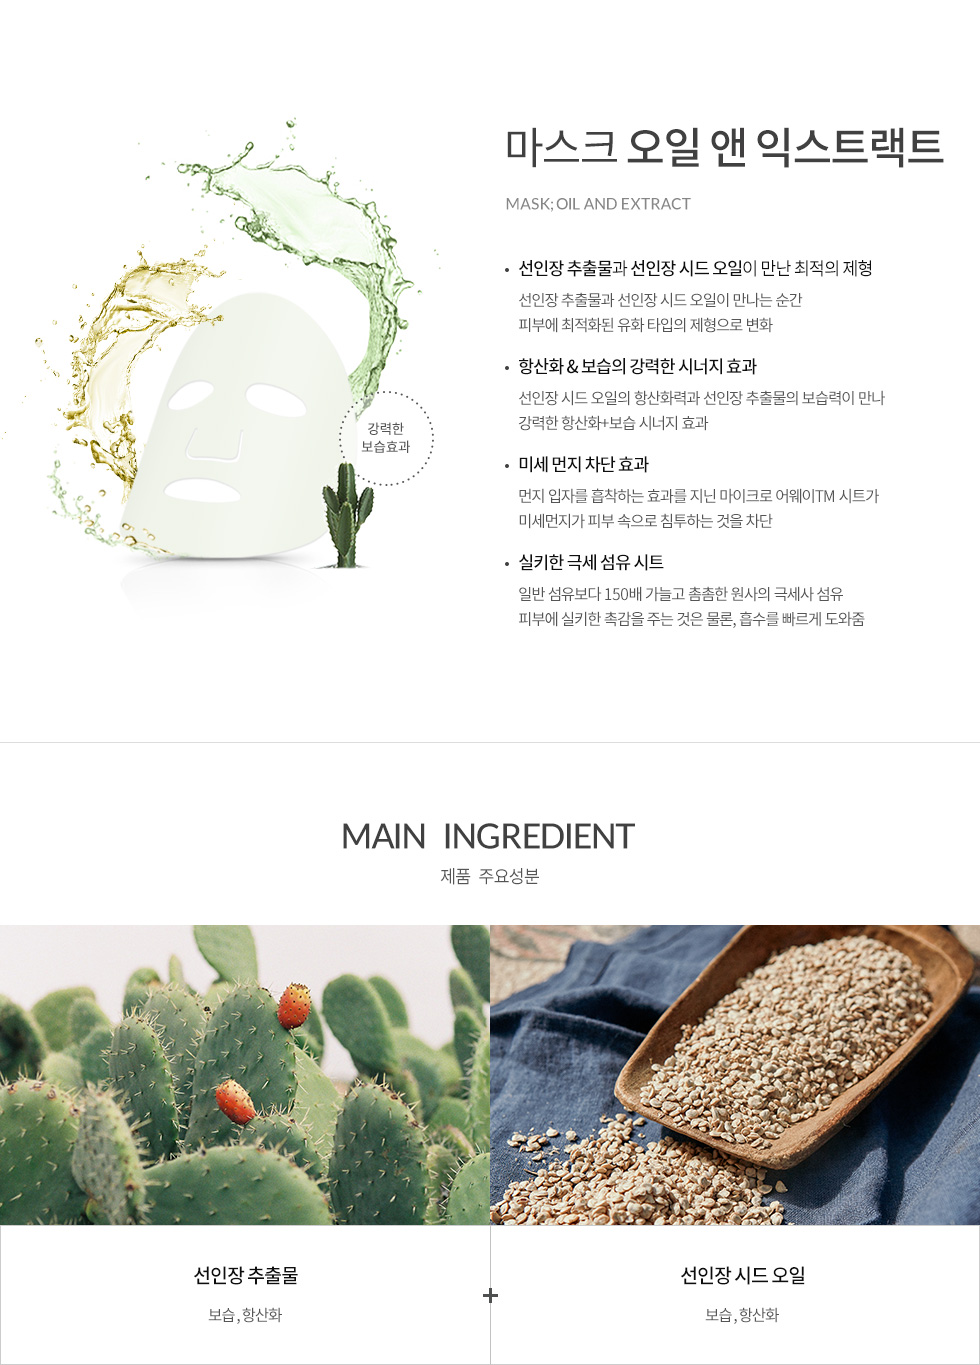 mask-oil-and-extract-02.jpg